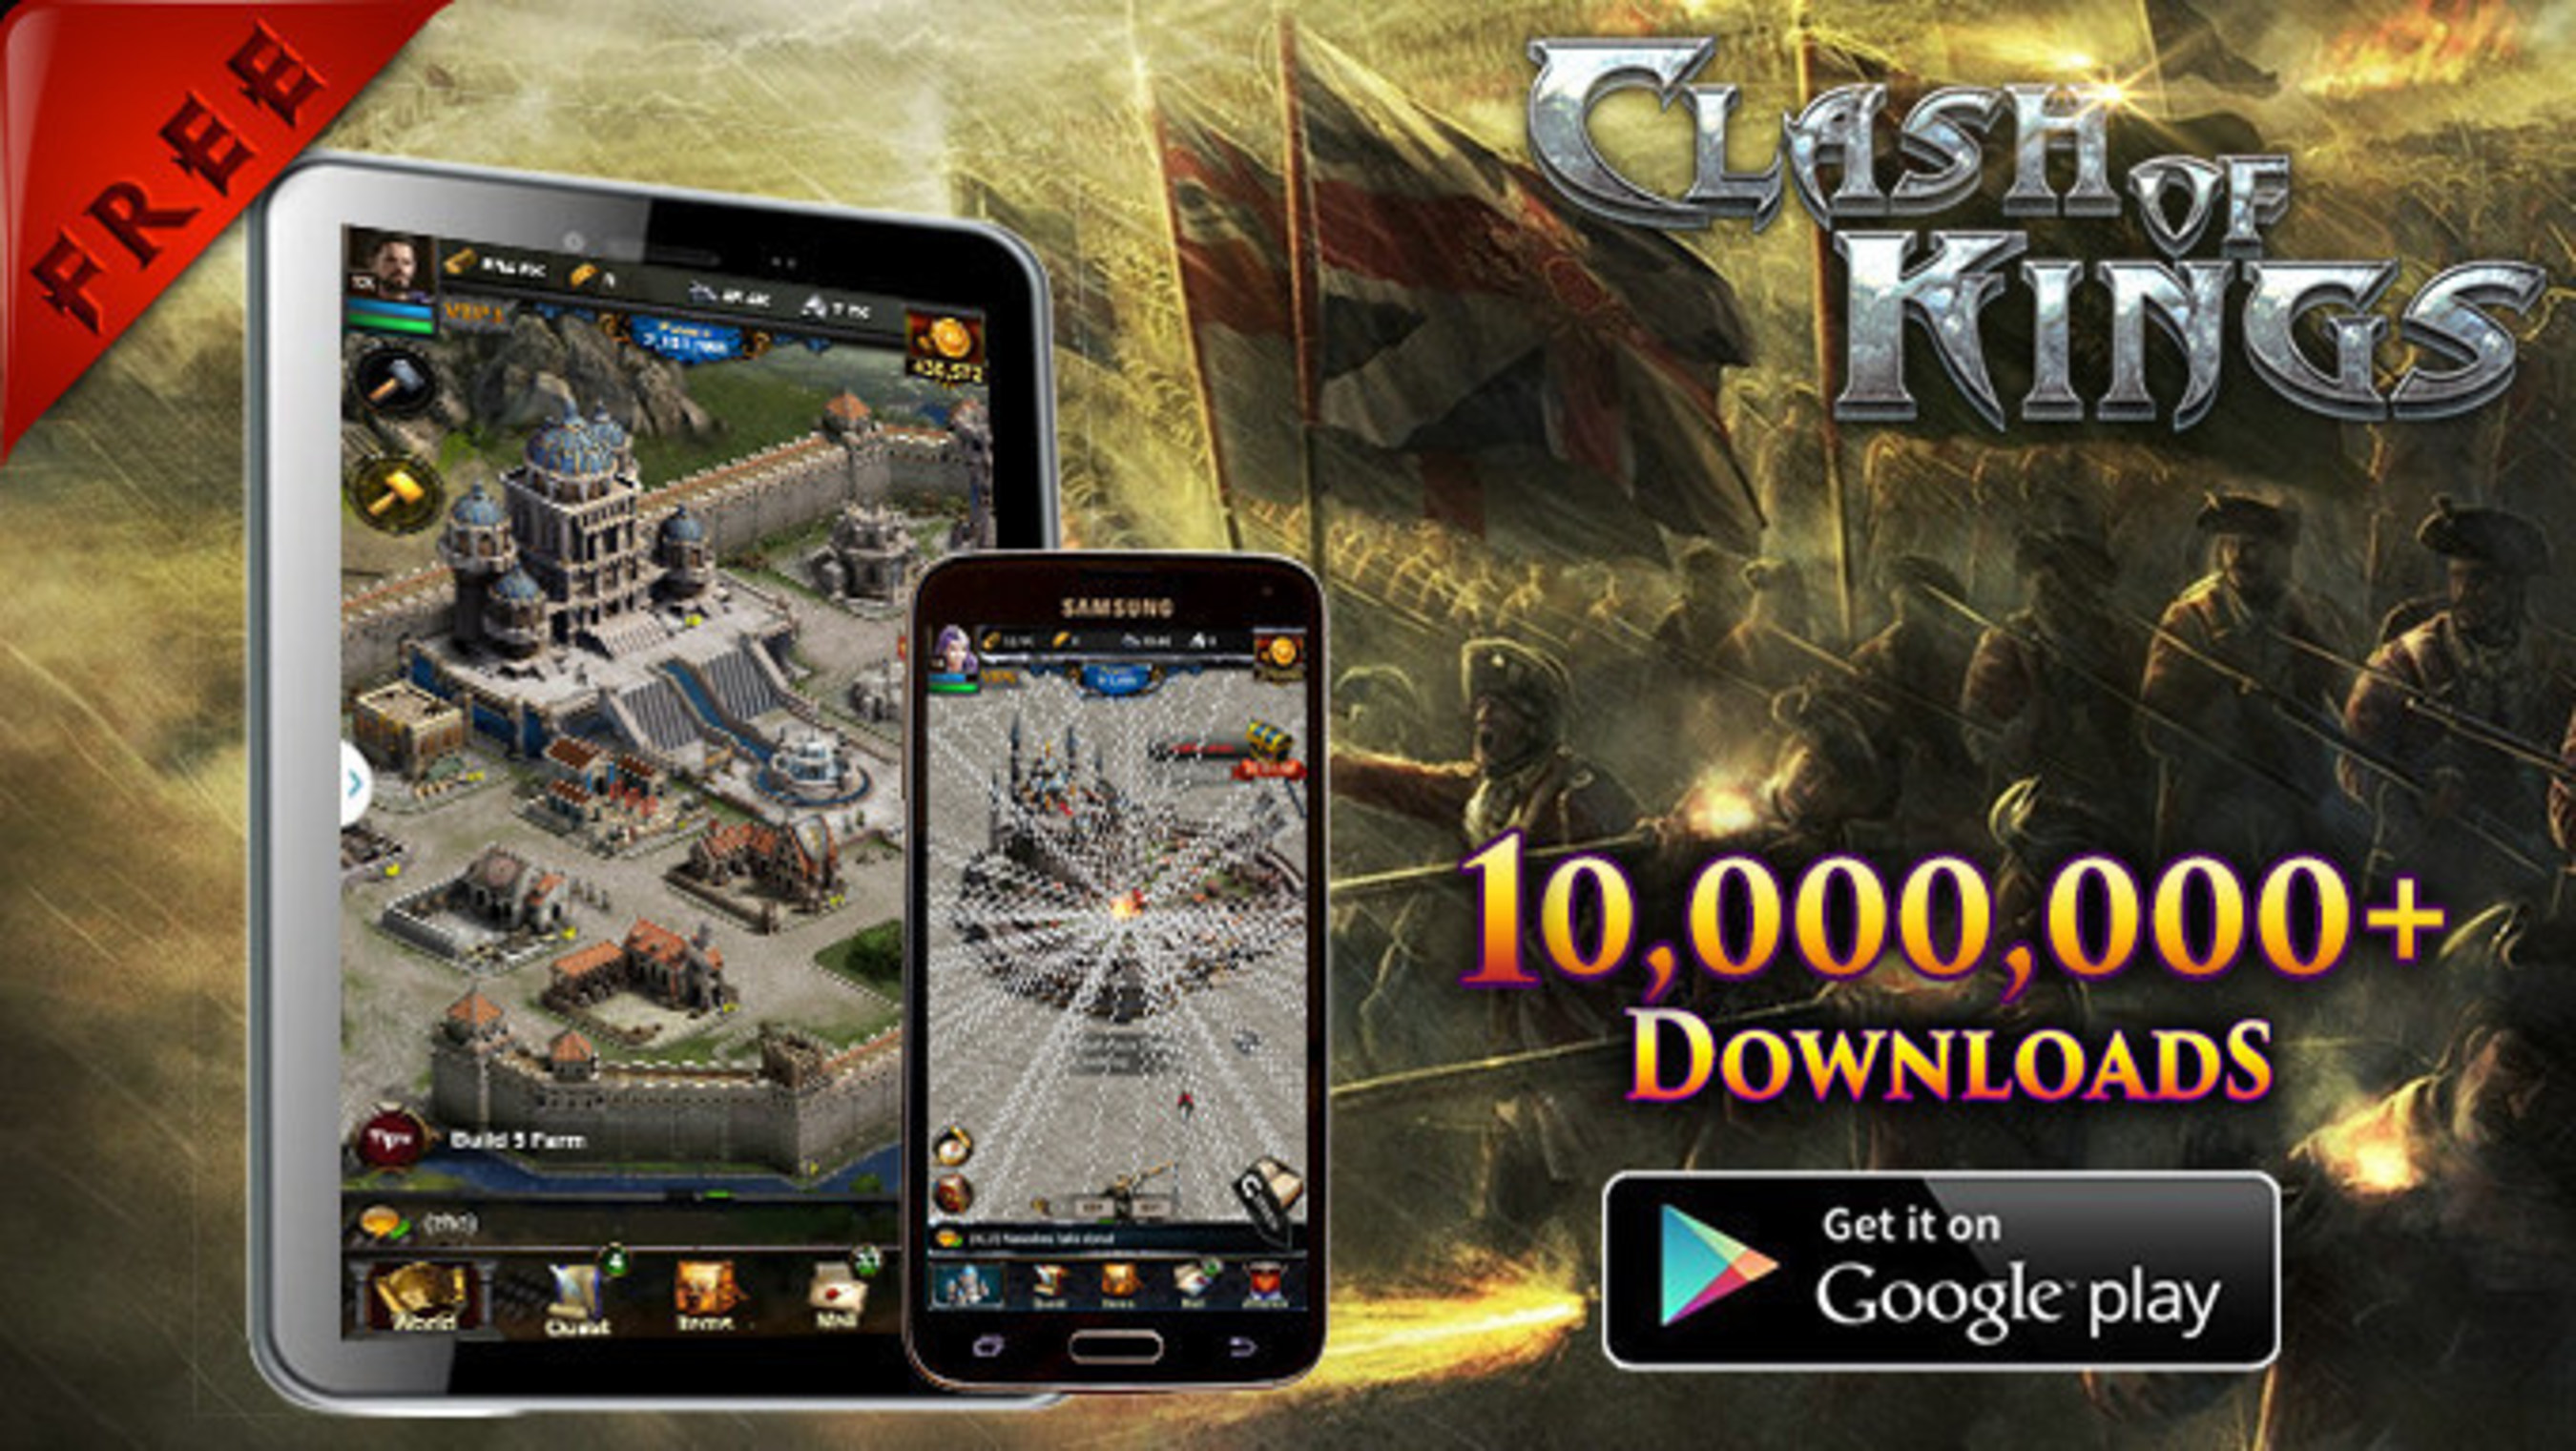 Clash of Kings for Android was downloaded over 10 million times on Google Play.